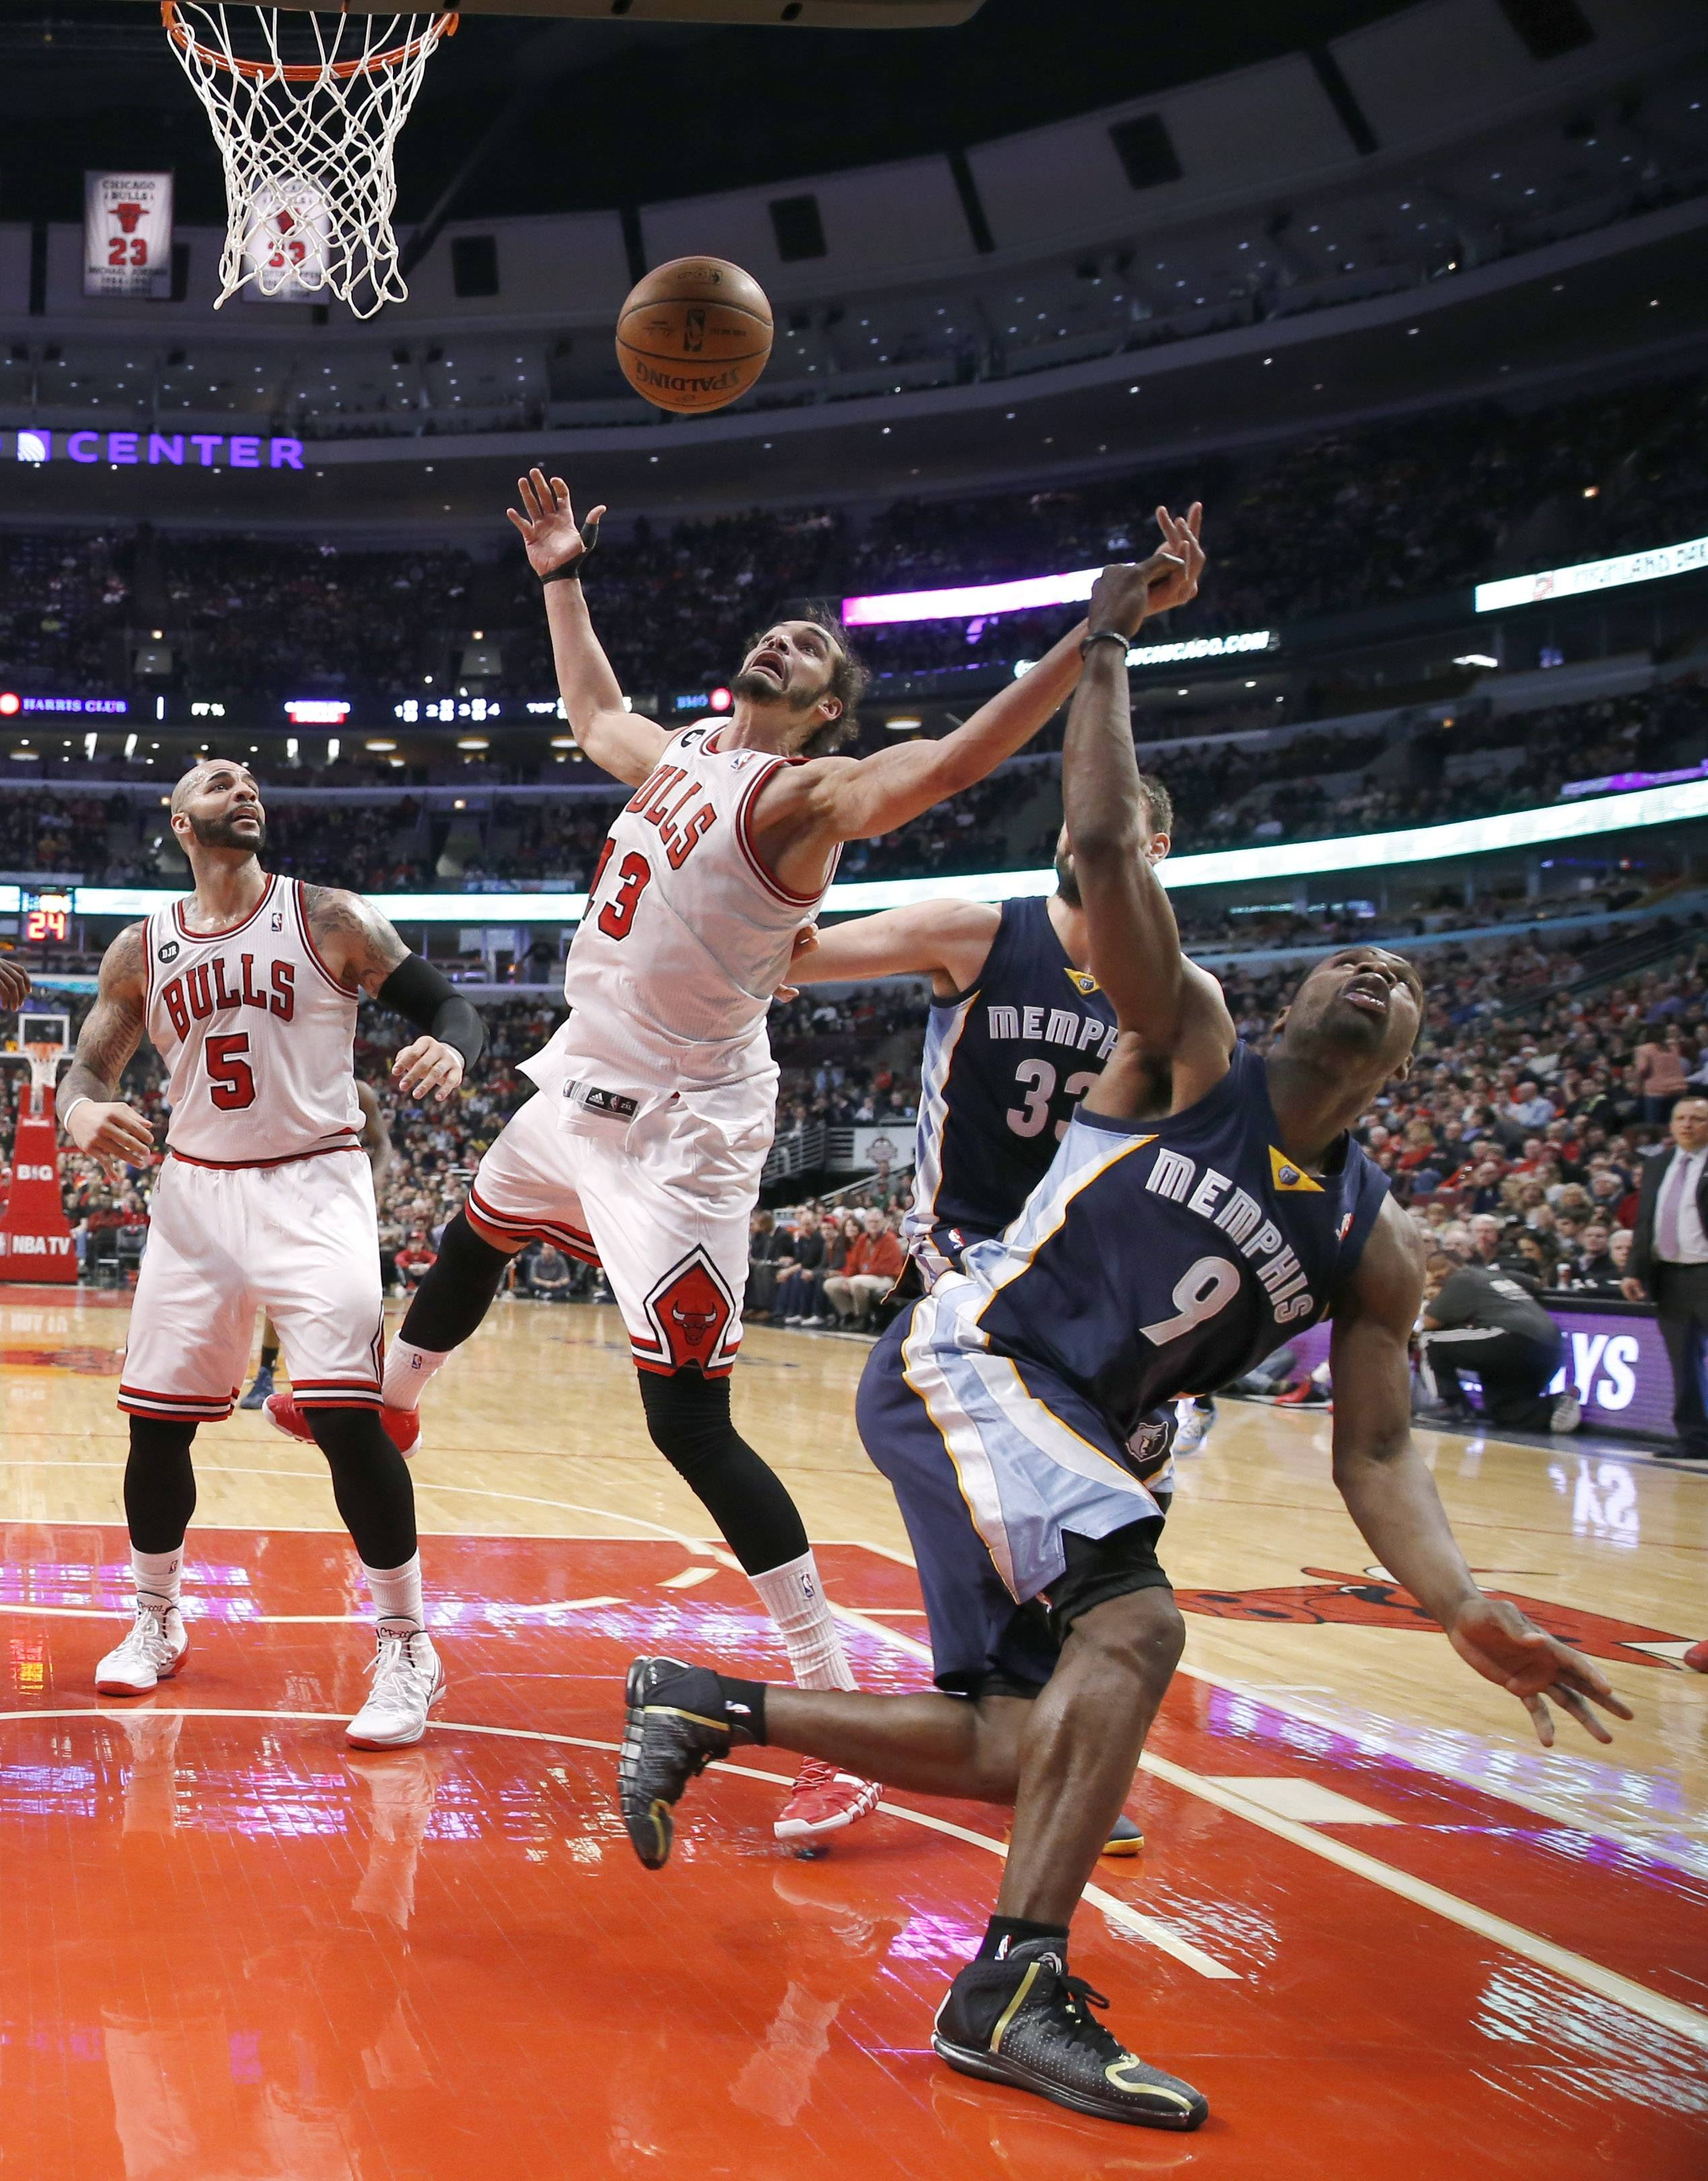 Bulls blink first against Grizzlies